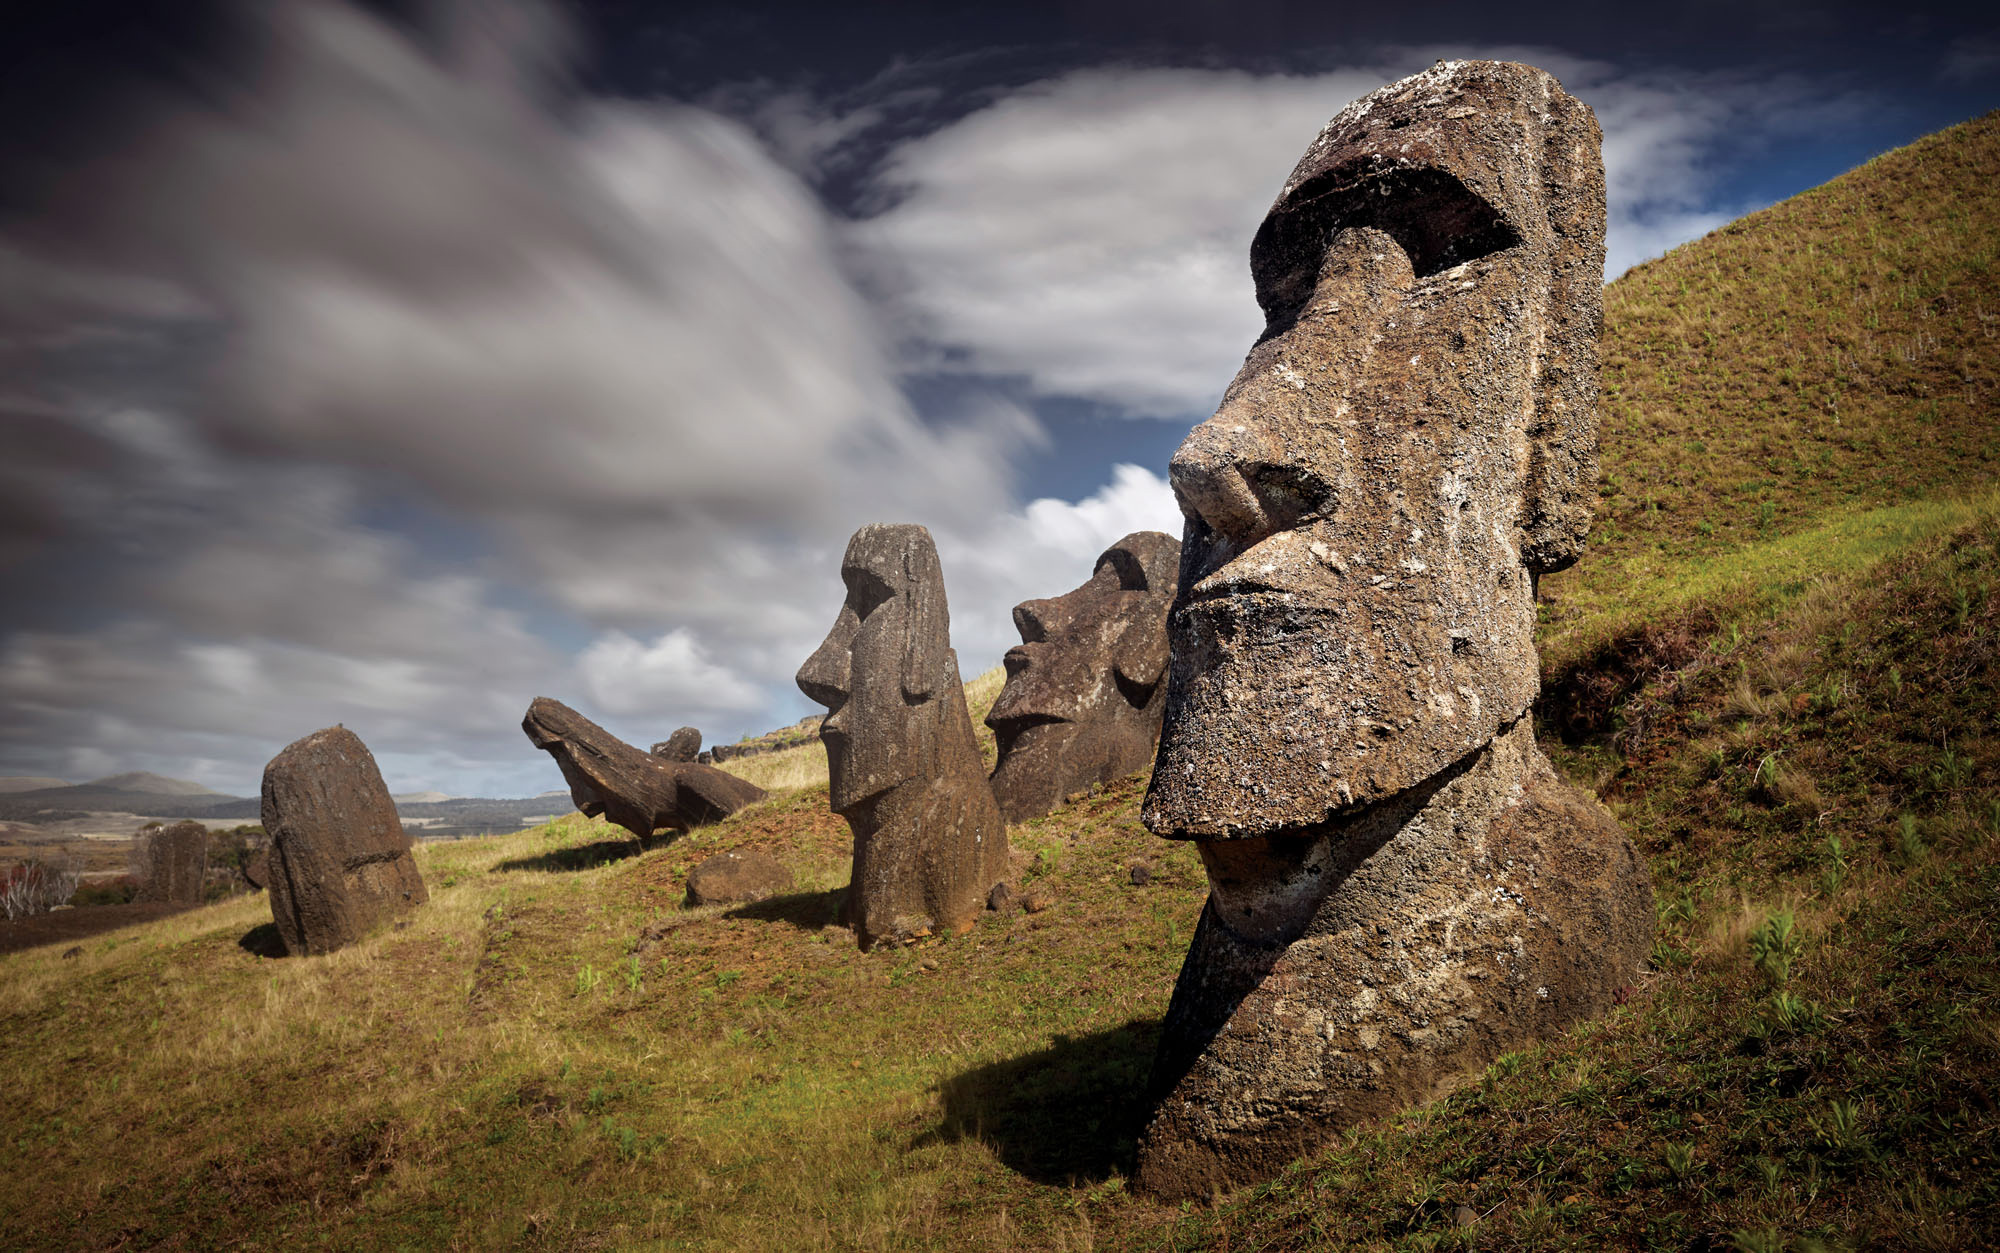 You know you're talking travel photography when you see the stone heads of Easter Island. Phase One XF, IQ180, Schneider 55mm lens, f14@ 30 seconds, ISO 35.